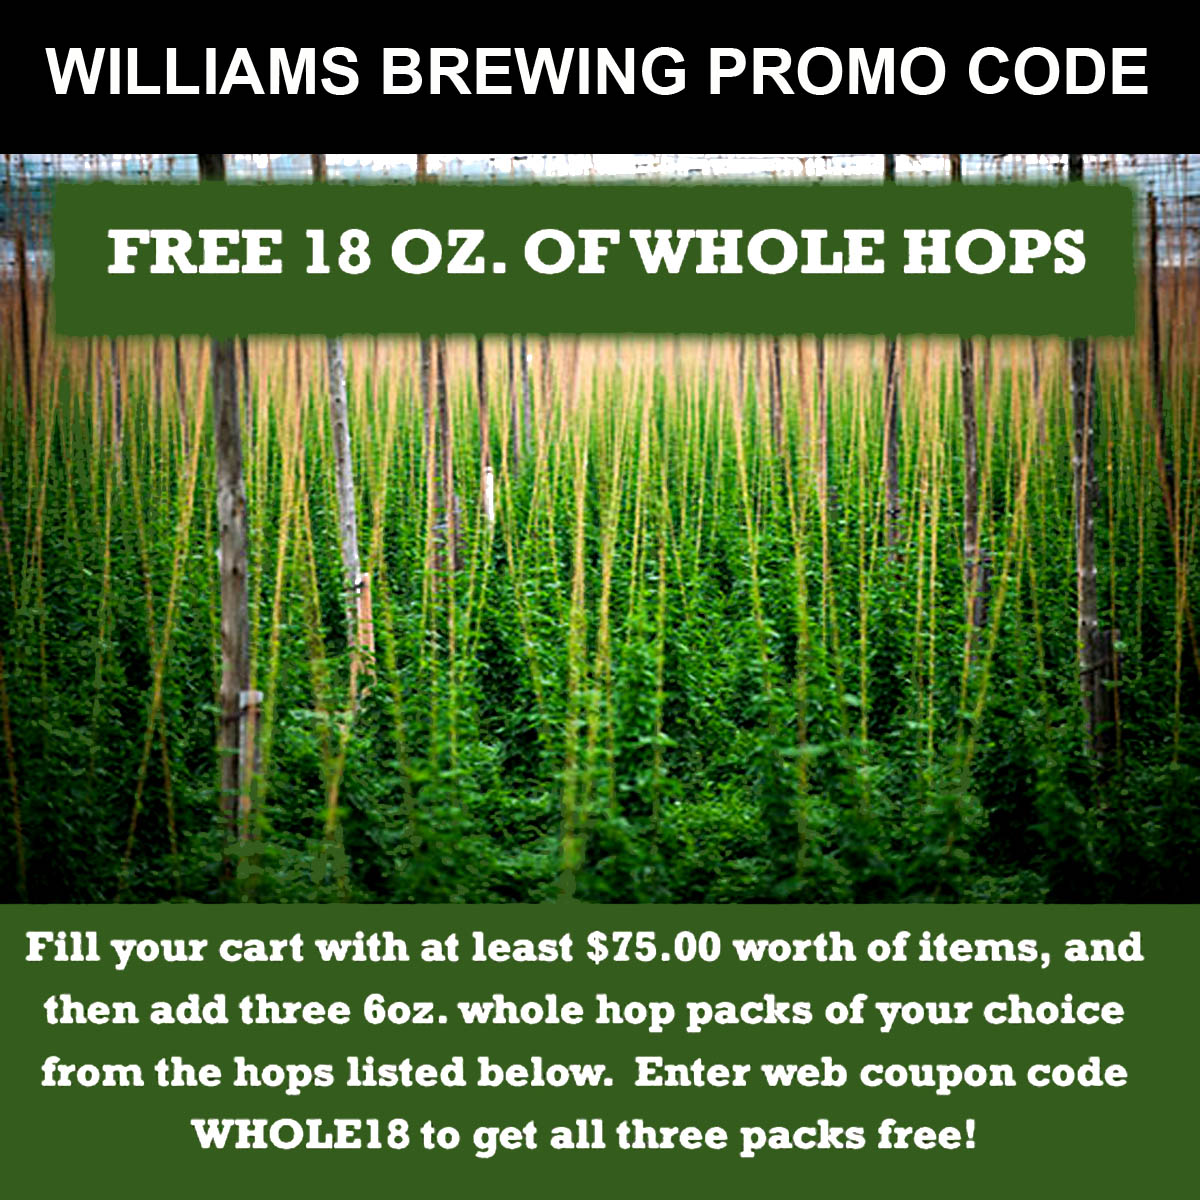 Williams Brewing Purchase $75 of items at Williams Brewing and get 18 Ounces of Whole Hops for Free with this WilliamsBrewing.com Promo Code Coupon Code